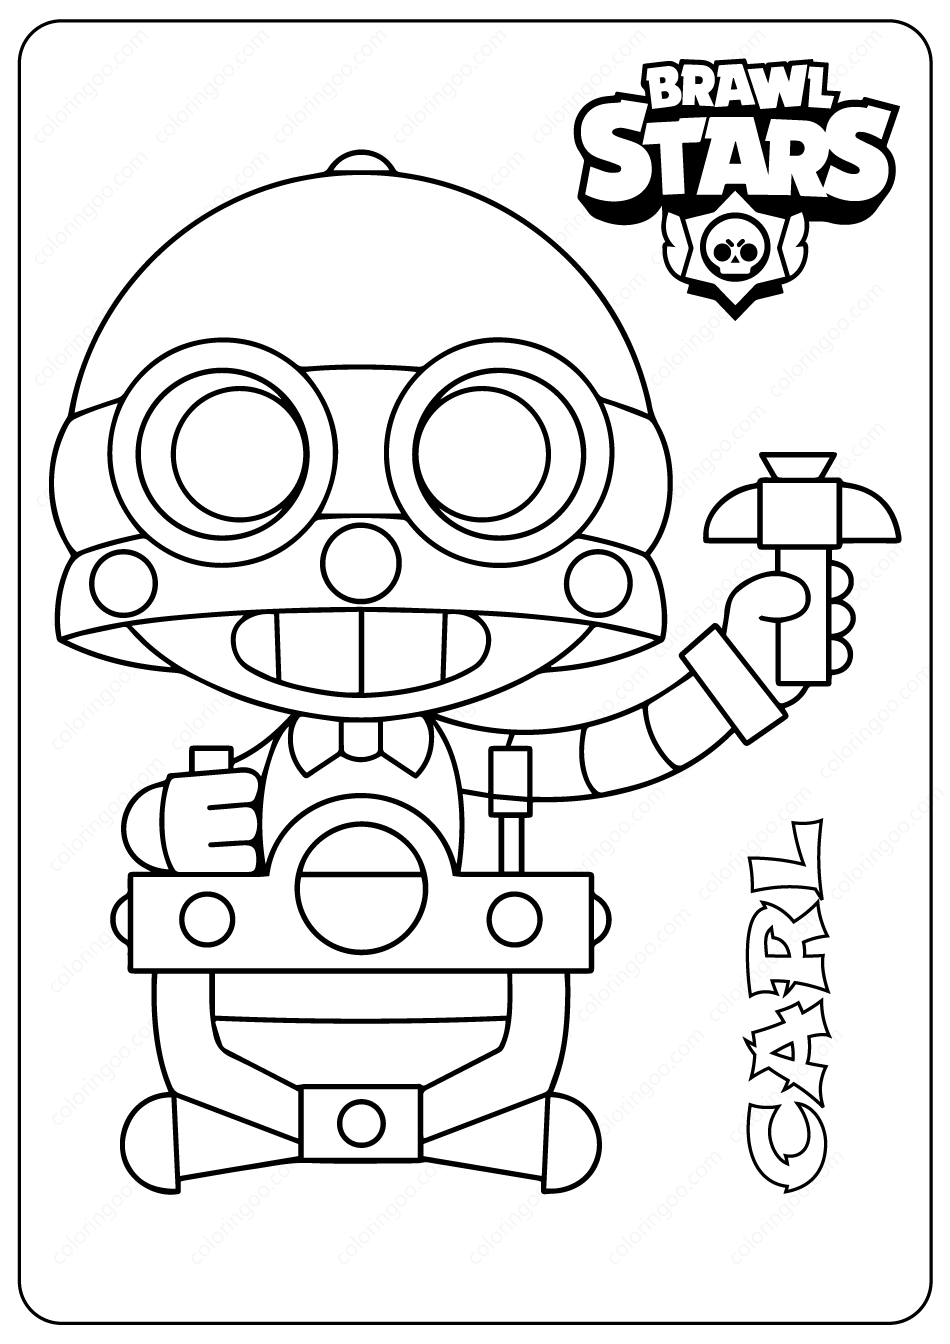 Printable Brawl Stars Carl Pdf Coloring Pages Star Coloring Pages Coloring Pages Star Birthday Party Decorations